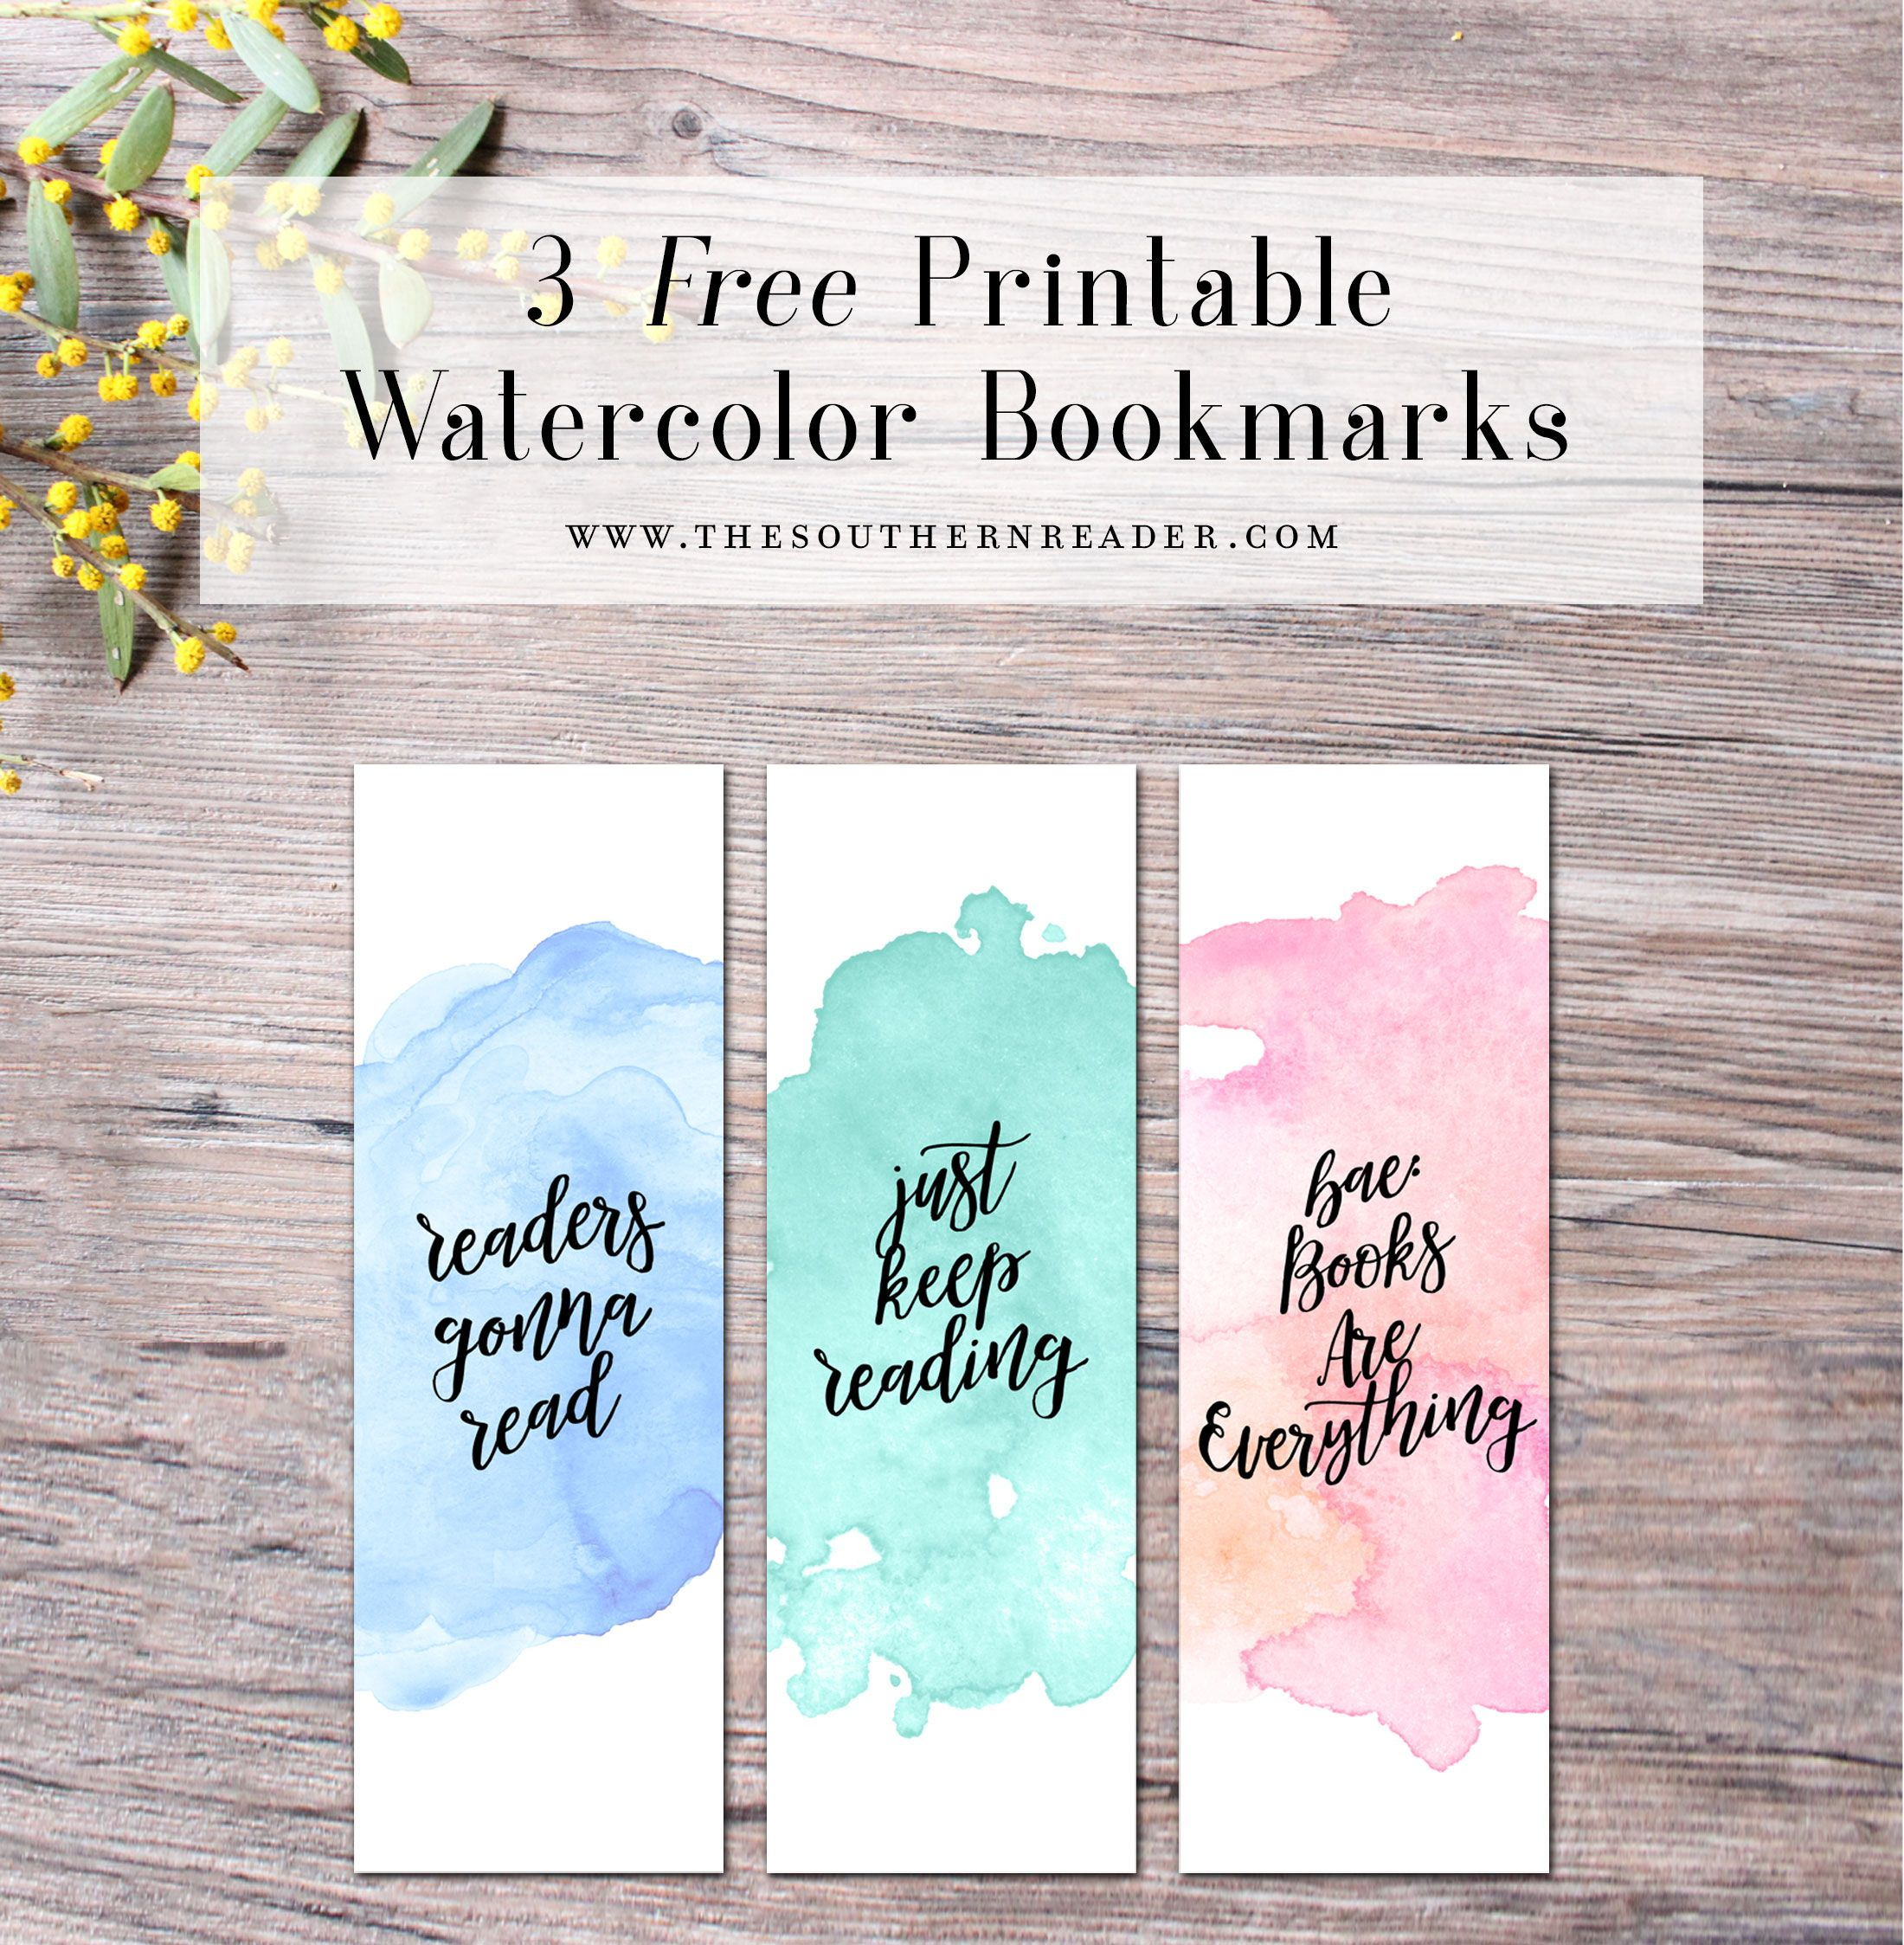 free printable watercolor bookmarks | calendar | pinterest